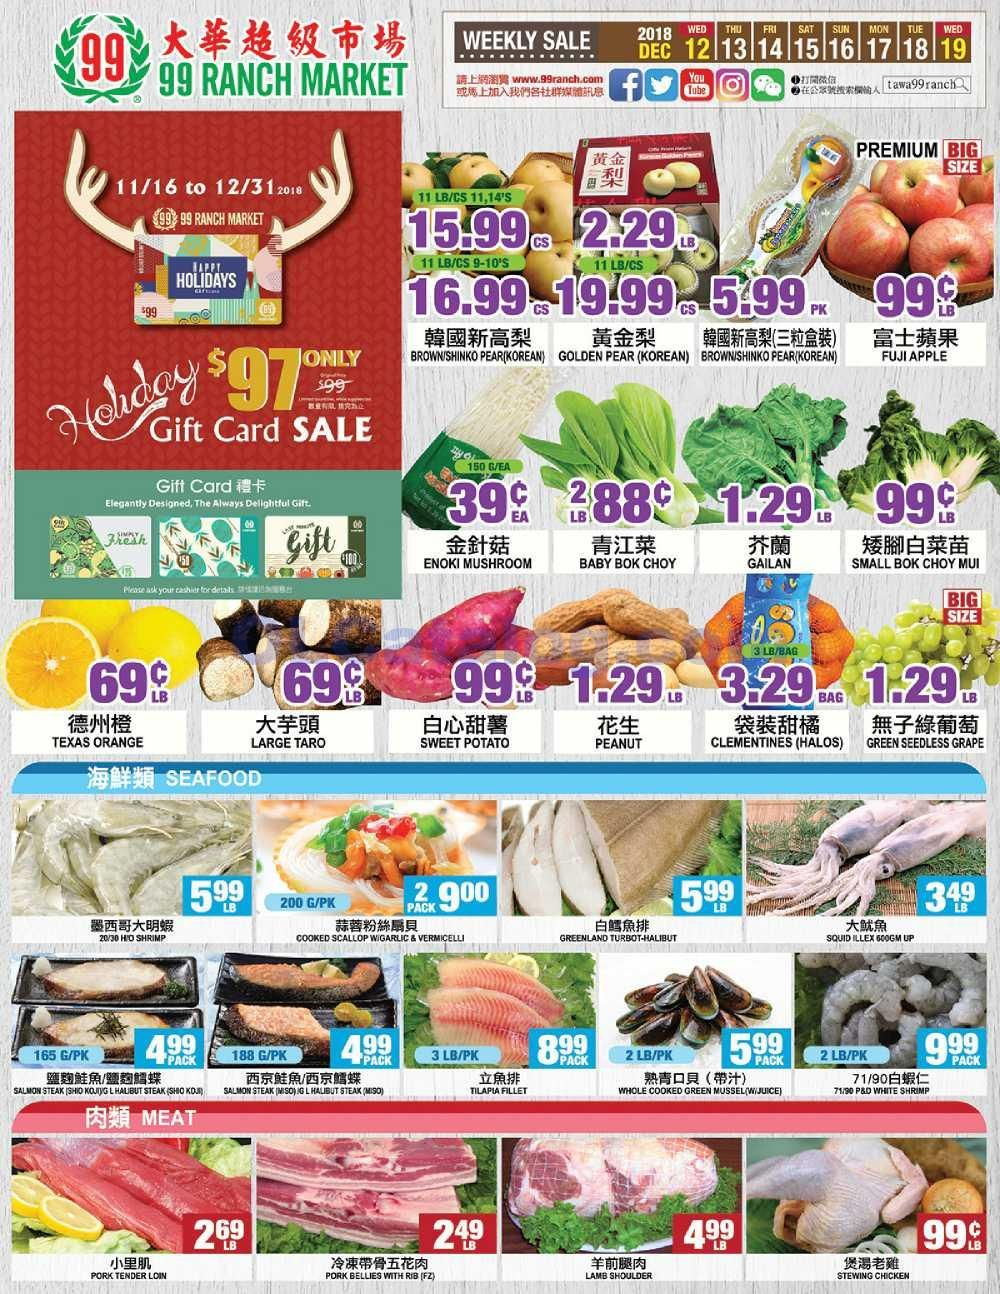 99 Ranch Market Weekly ad December 12 19, 2018. View the